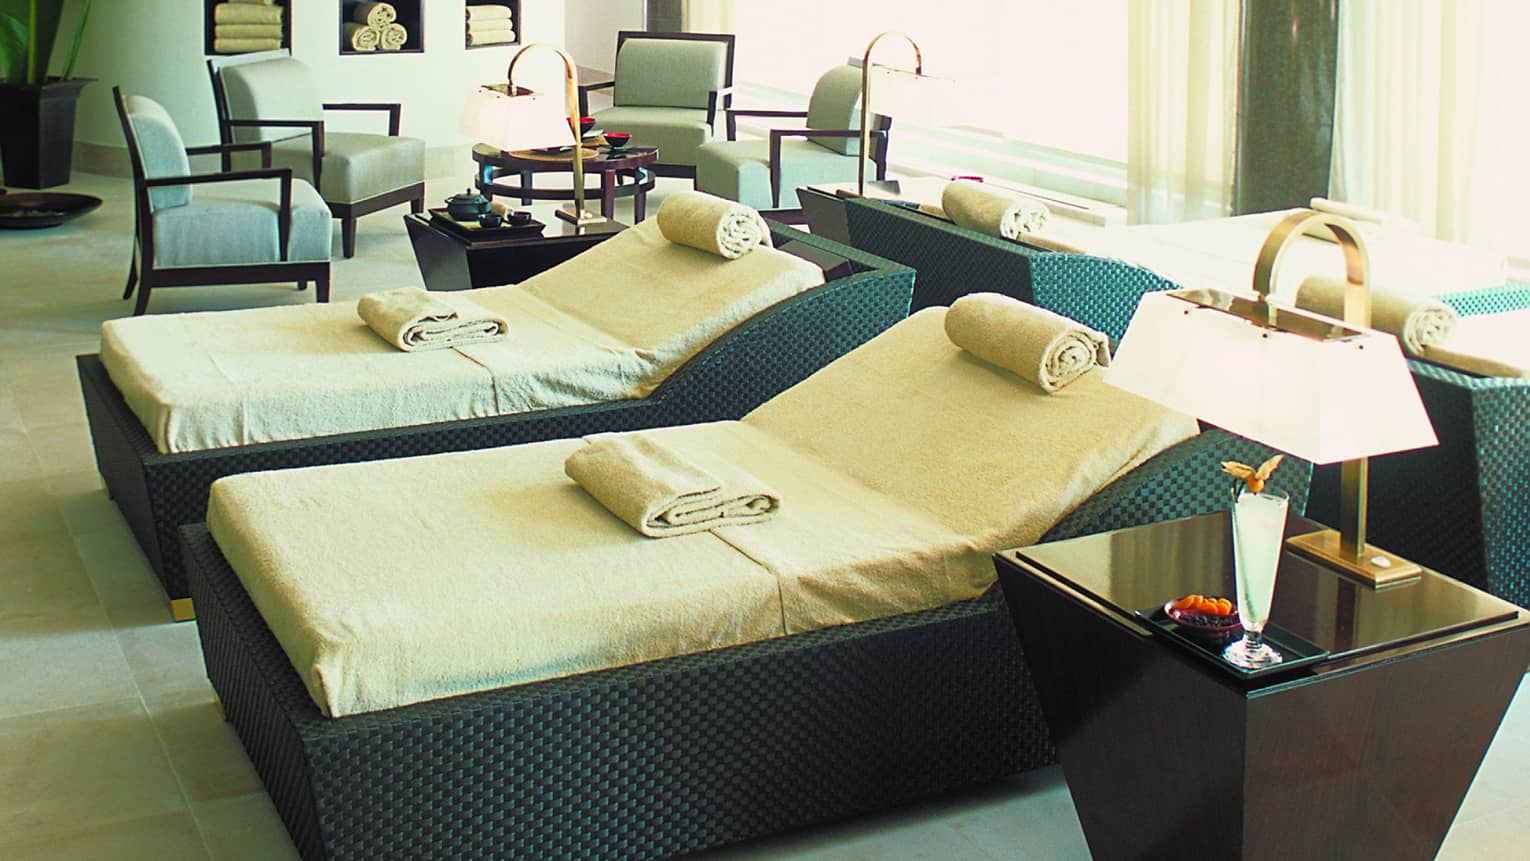 Two large black wicker spa beds with cushions, rolled towels beside table with lamp, seating area in background